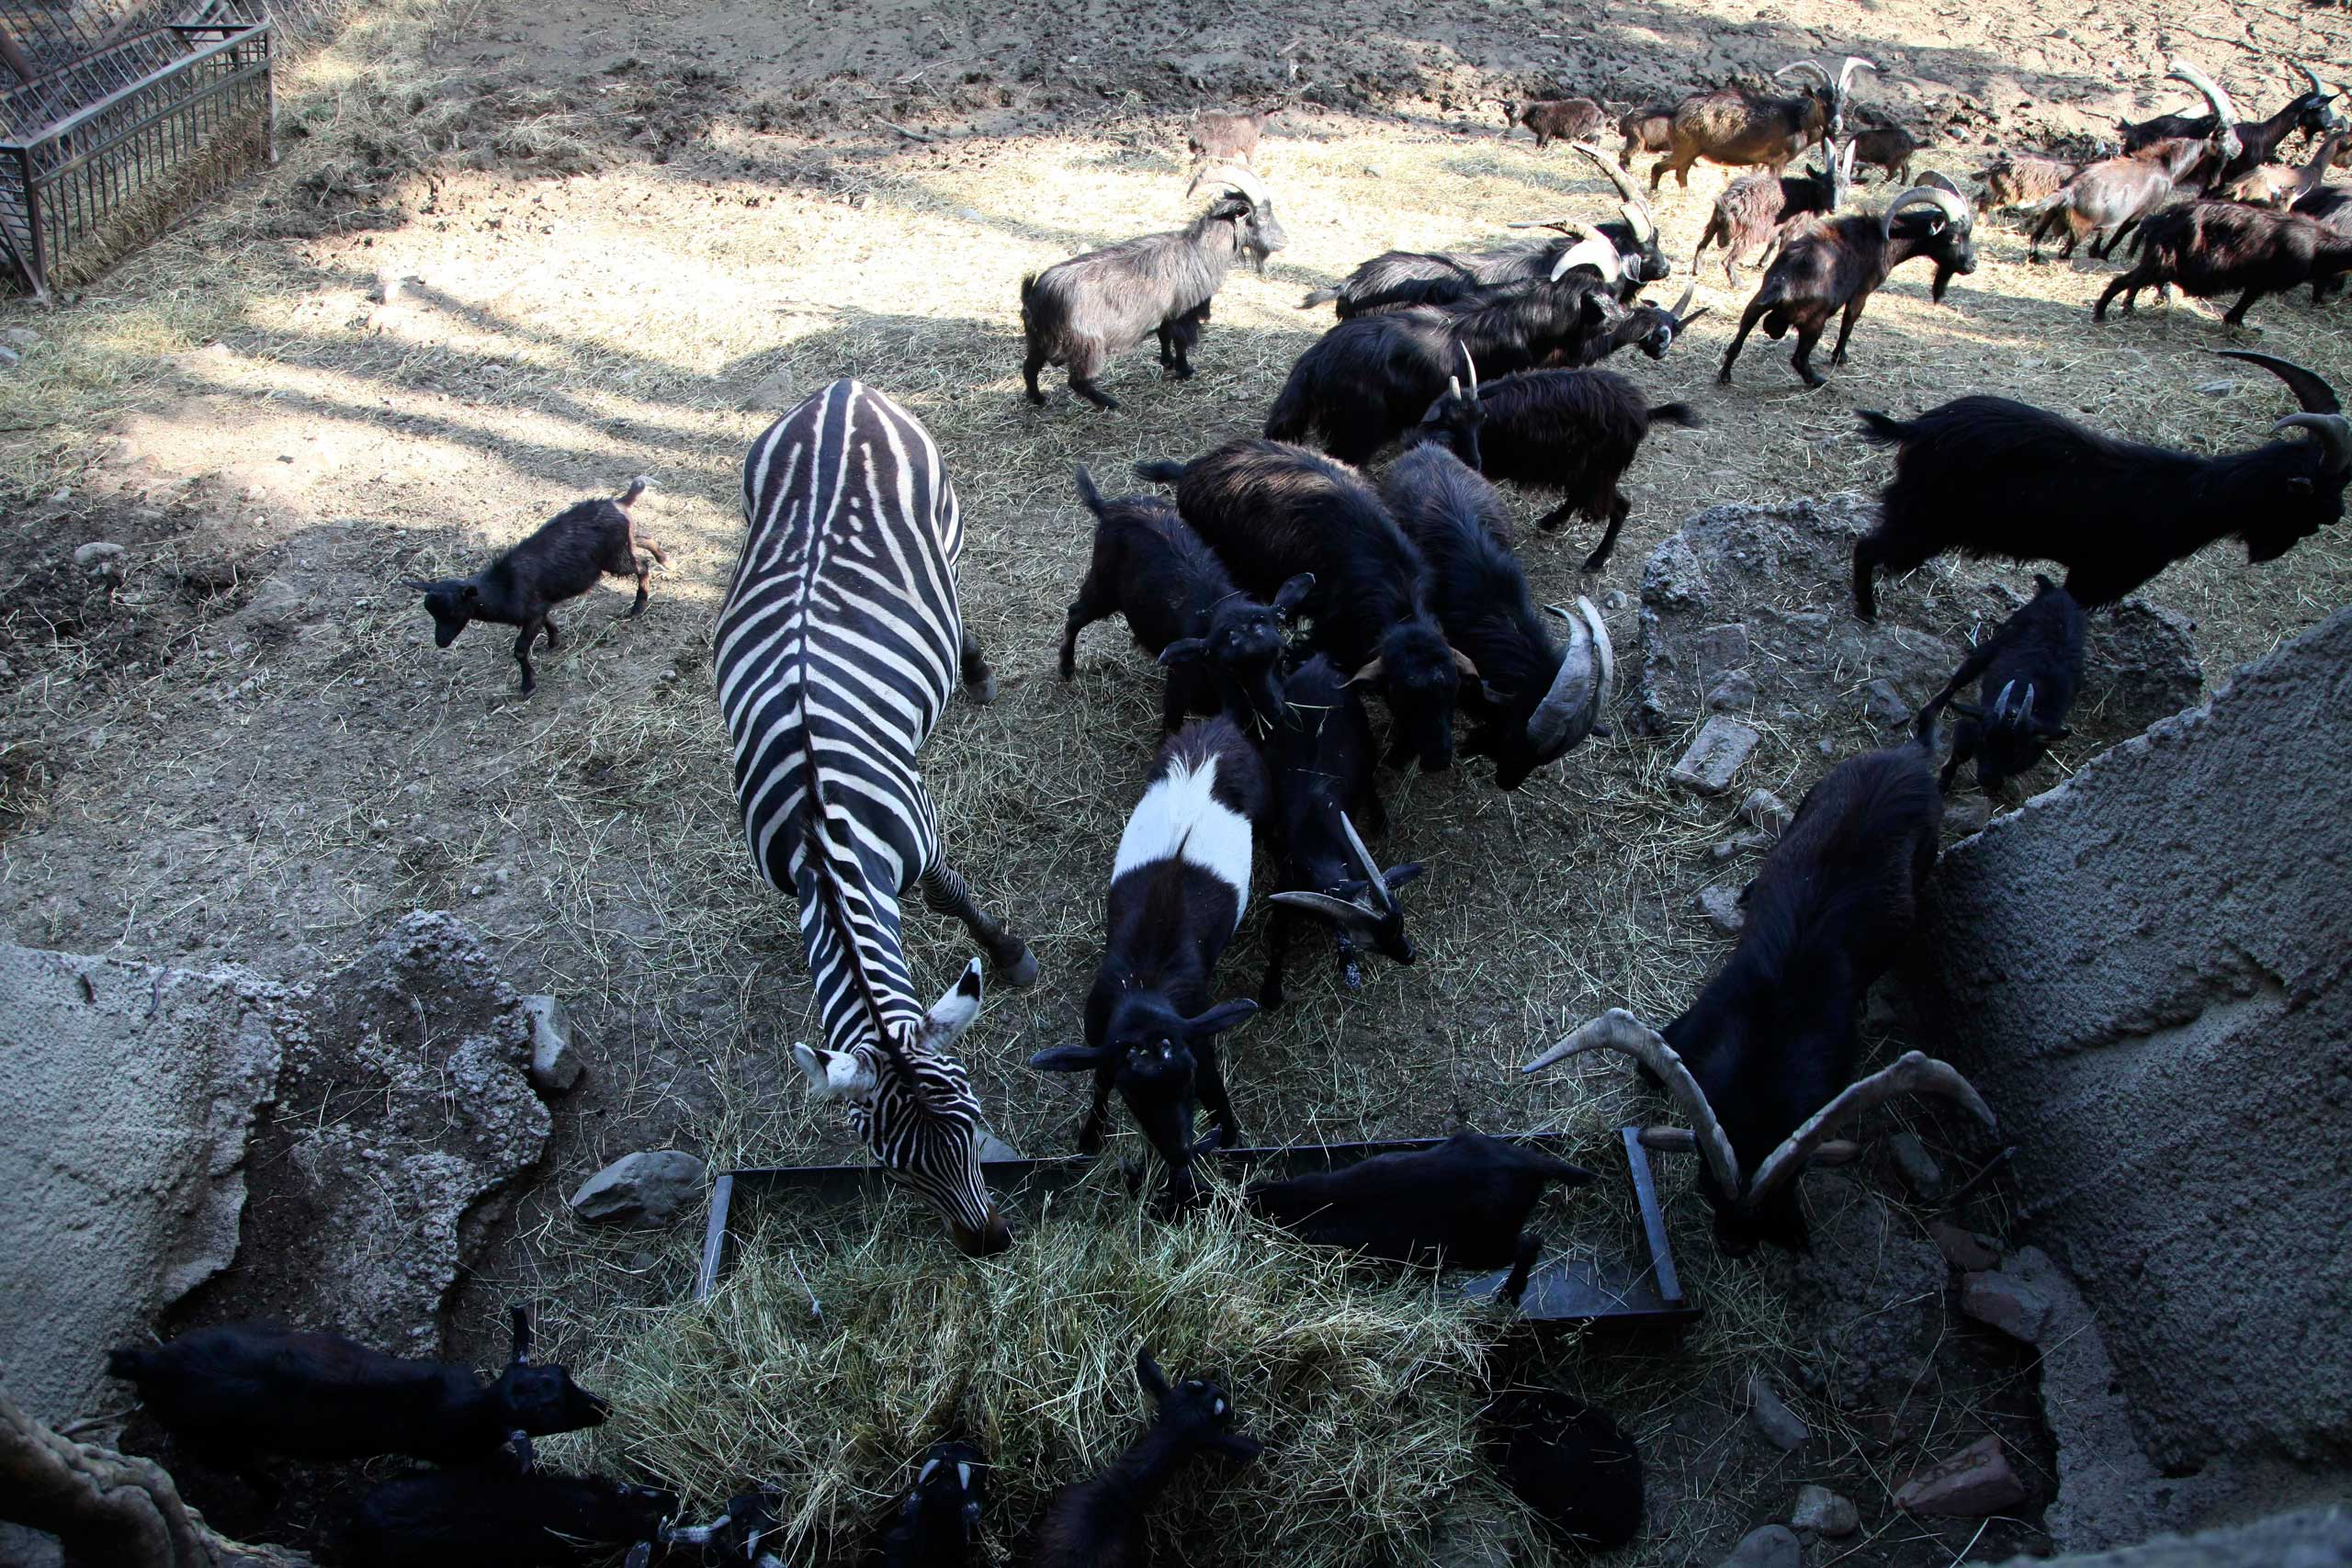 A zebra and other animals escaped from a flooded zoo stand on a hill inside the zoo in Tbilisi, Georgia on June 14, 2015.